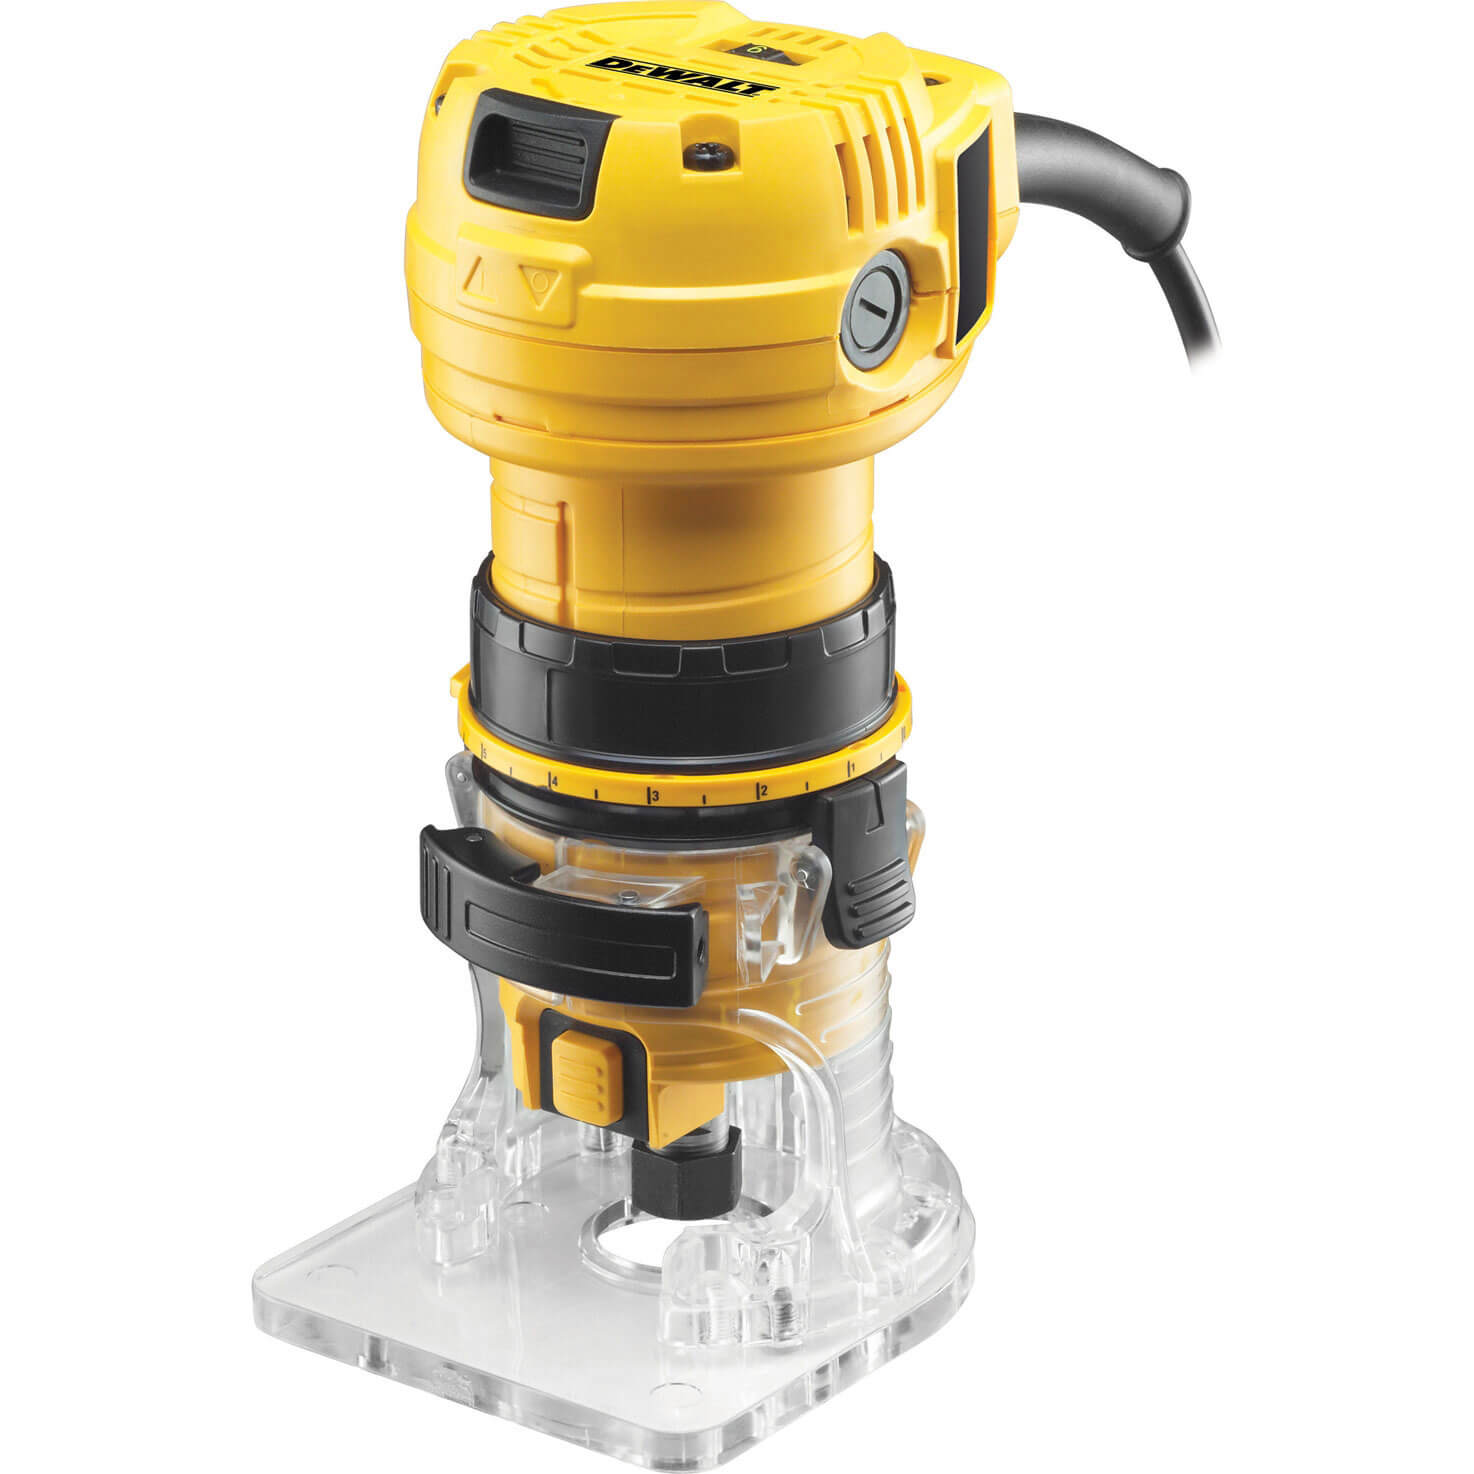 Image of Dewalt DWE6005 Variable Speed Laminate Trimmer 590w 240v